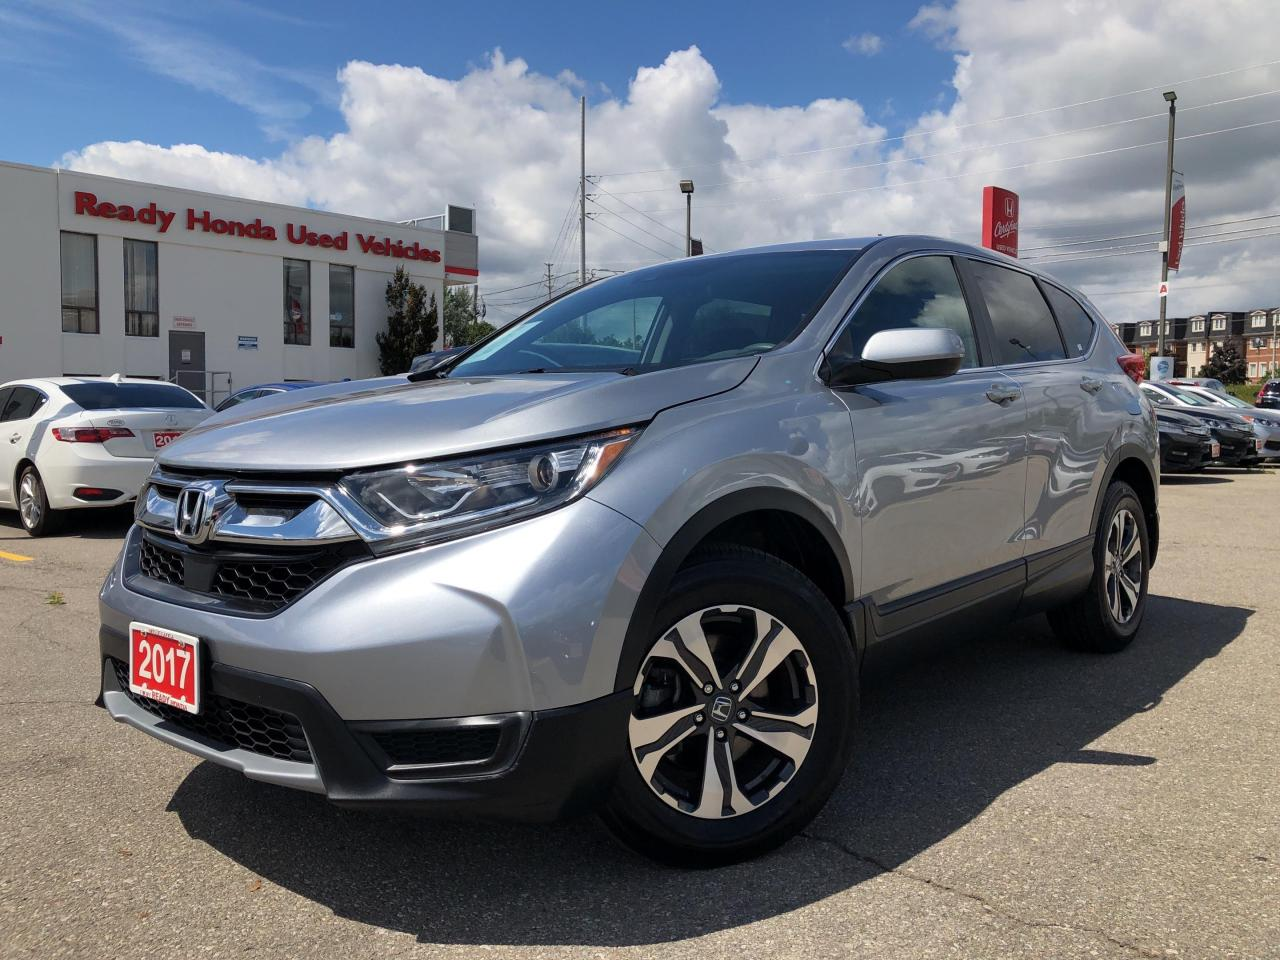 used 2017 honda cr-v lx for sale in mississauga, ontario carpages.ca